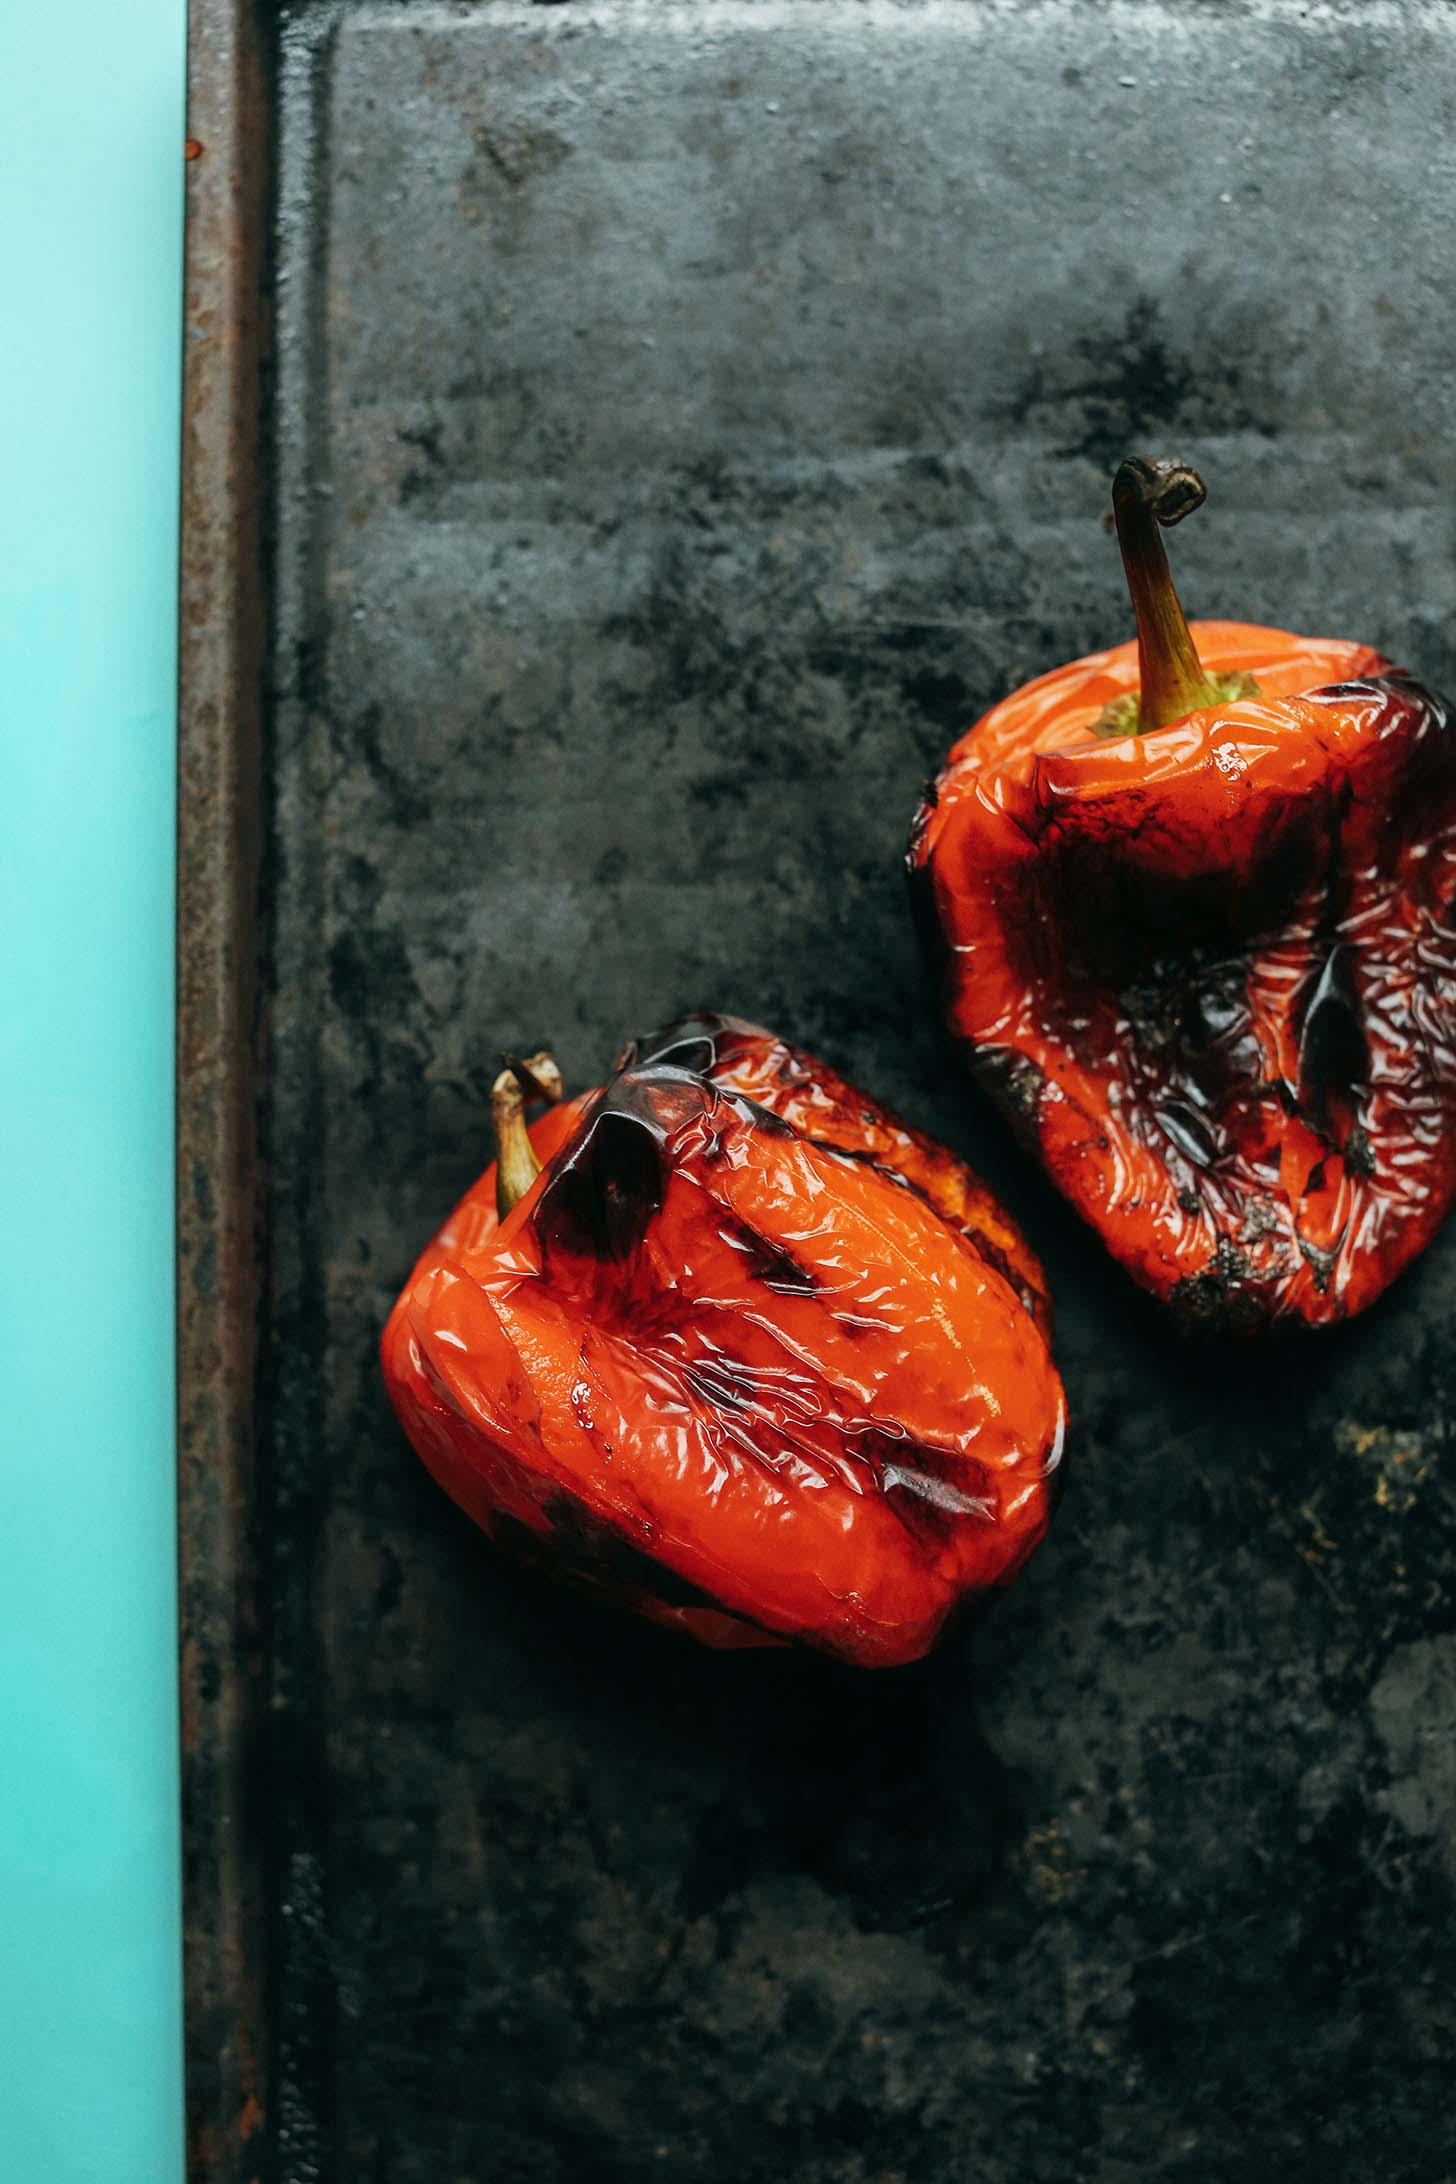 Roasting two red bell peppers on a baking sheet for Creamy Vegan Roasted Red Pepper Tomato Soup